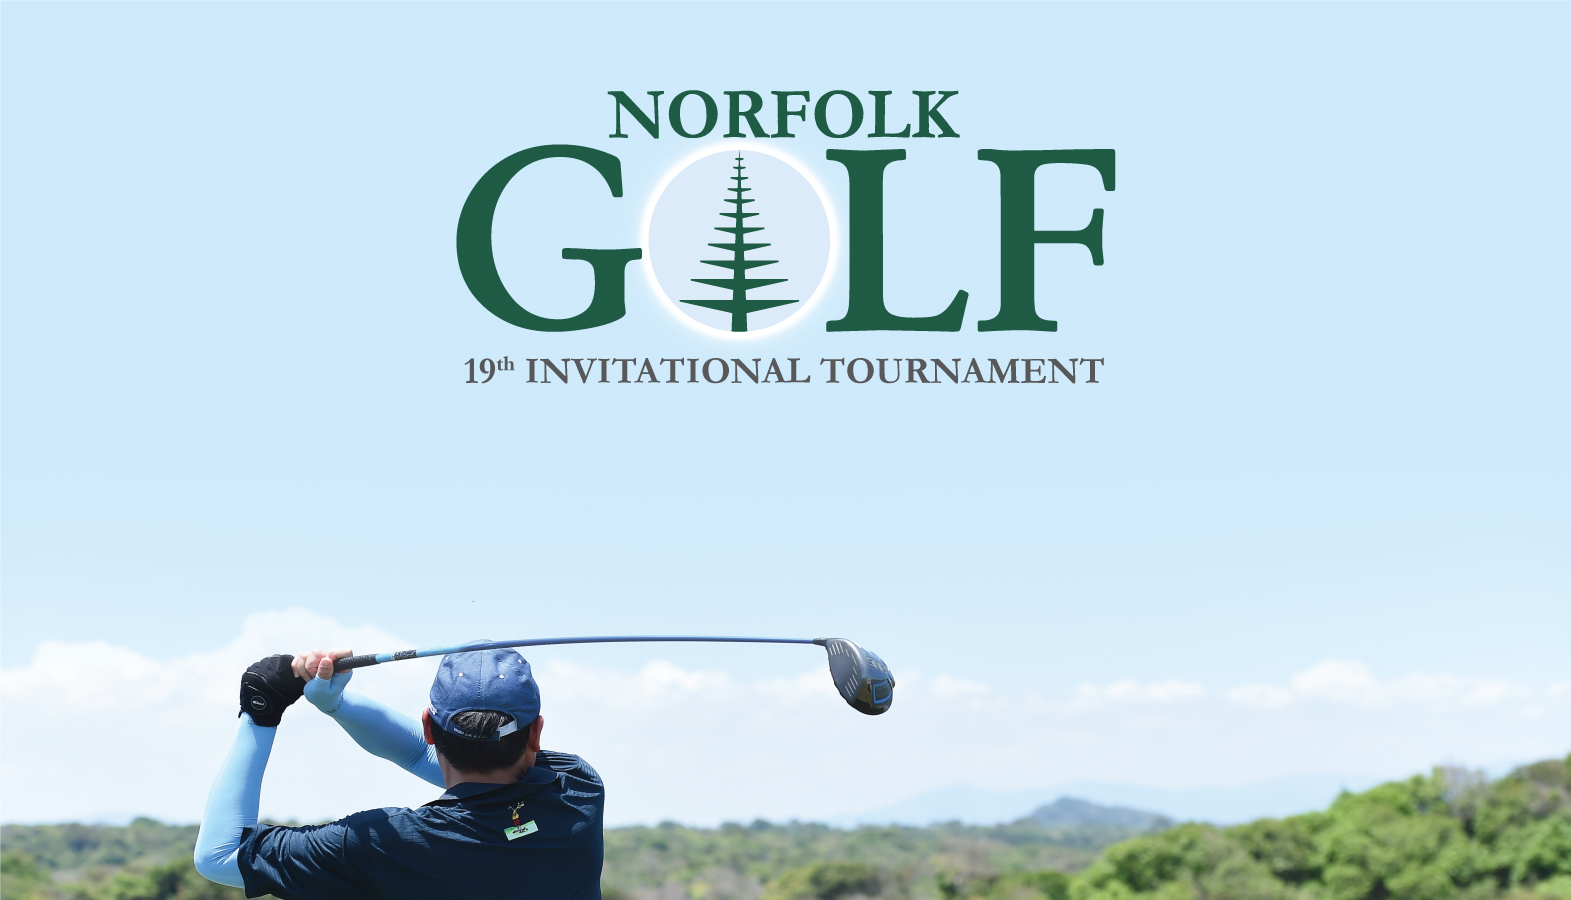 The 19th Norfolk Invitational Golf Tournament in 2018